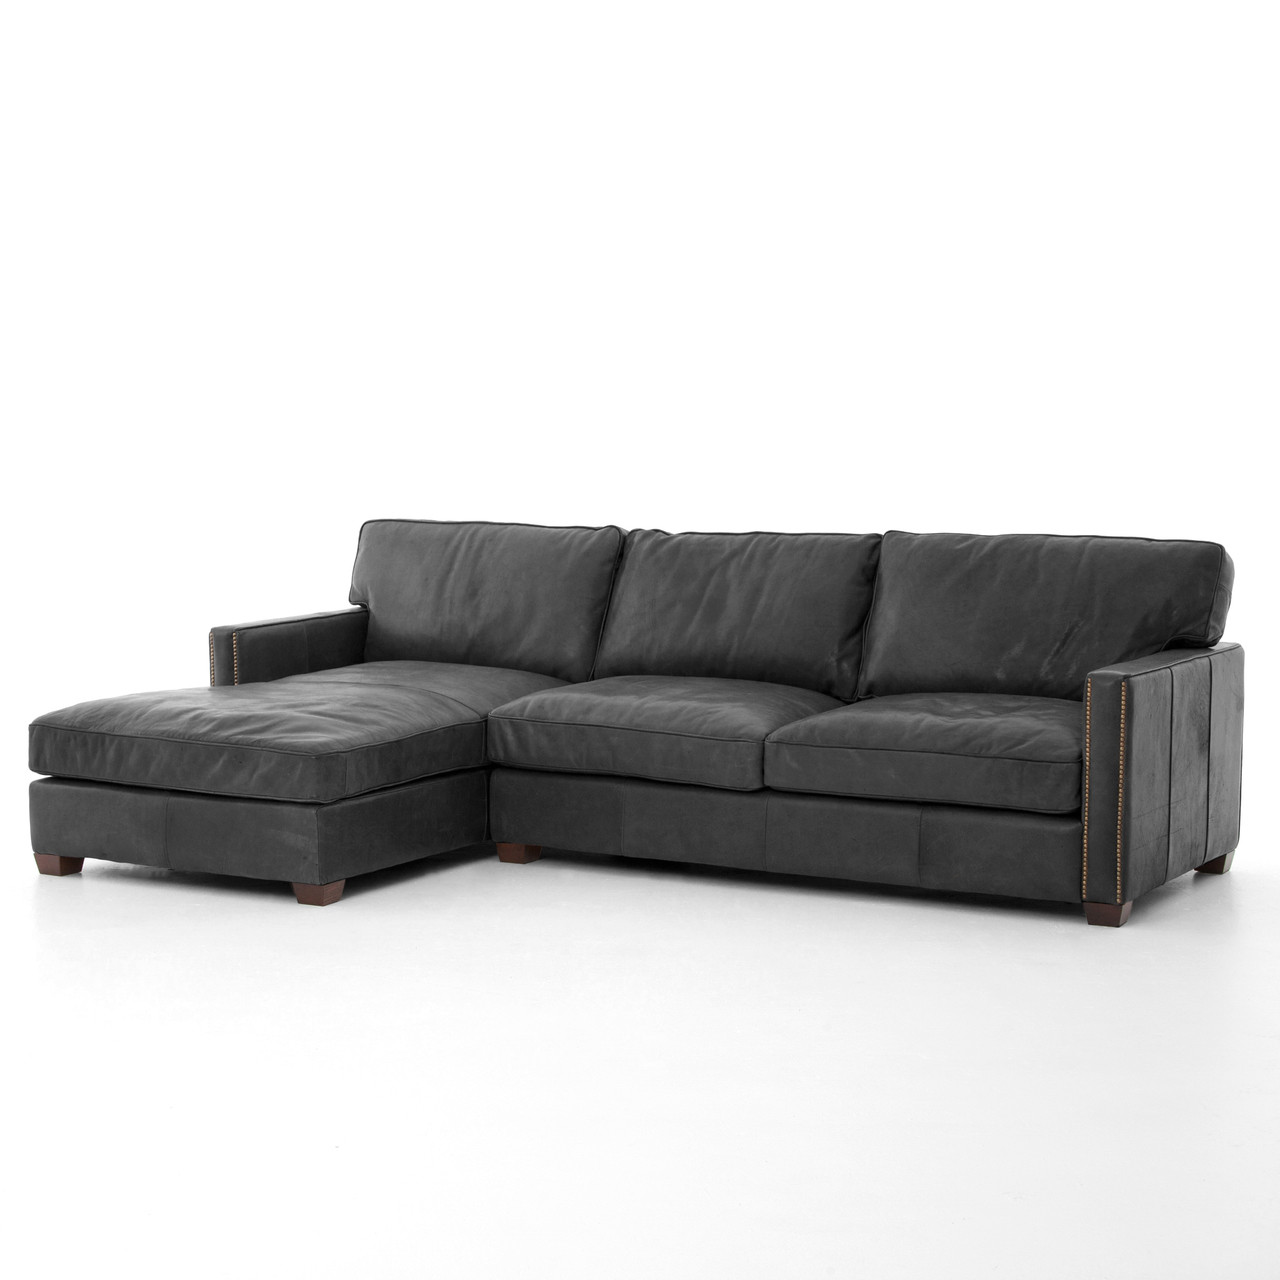 Larkin Vintage Black Distressed Leather Sectional Sofa with chaise  sc 1 st  Zin Home : black leather sectional sofa - Sectionals, Sofas & Couches